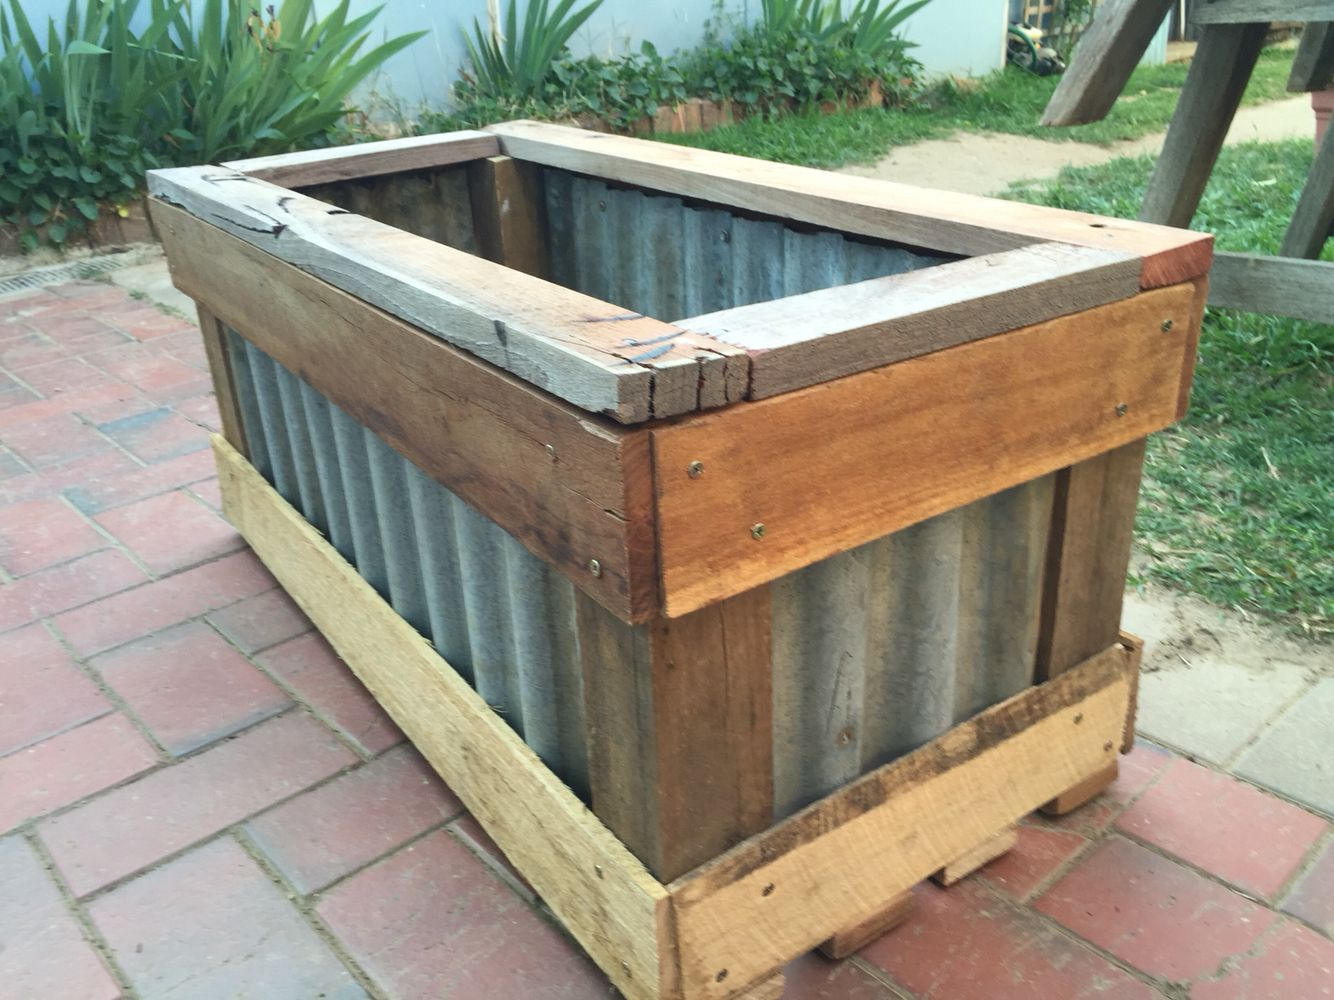 Planter Box Made With Recycled Hardwood And Corrugated Iron Planter Boxes Raised Garden Beds Diy Raised Wooden Planters